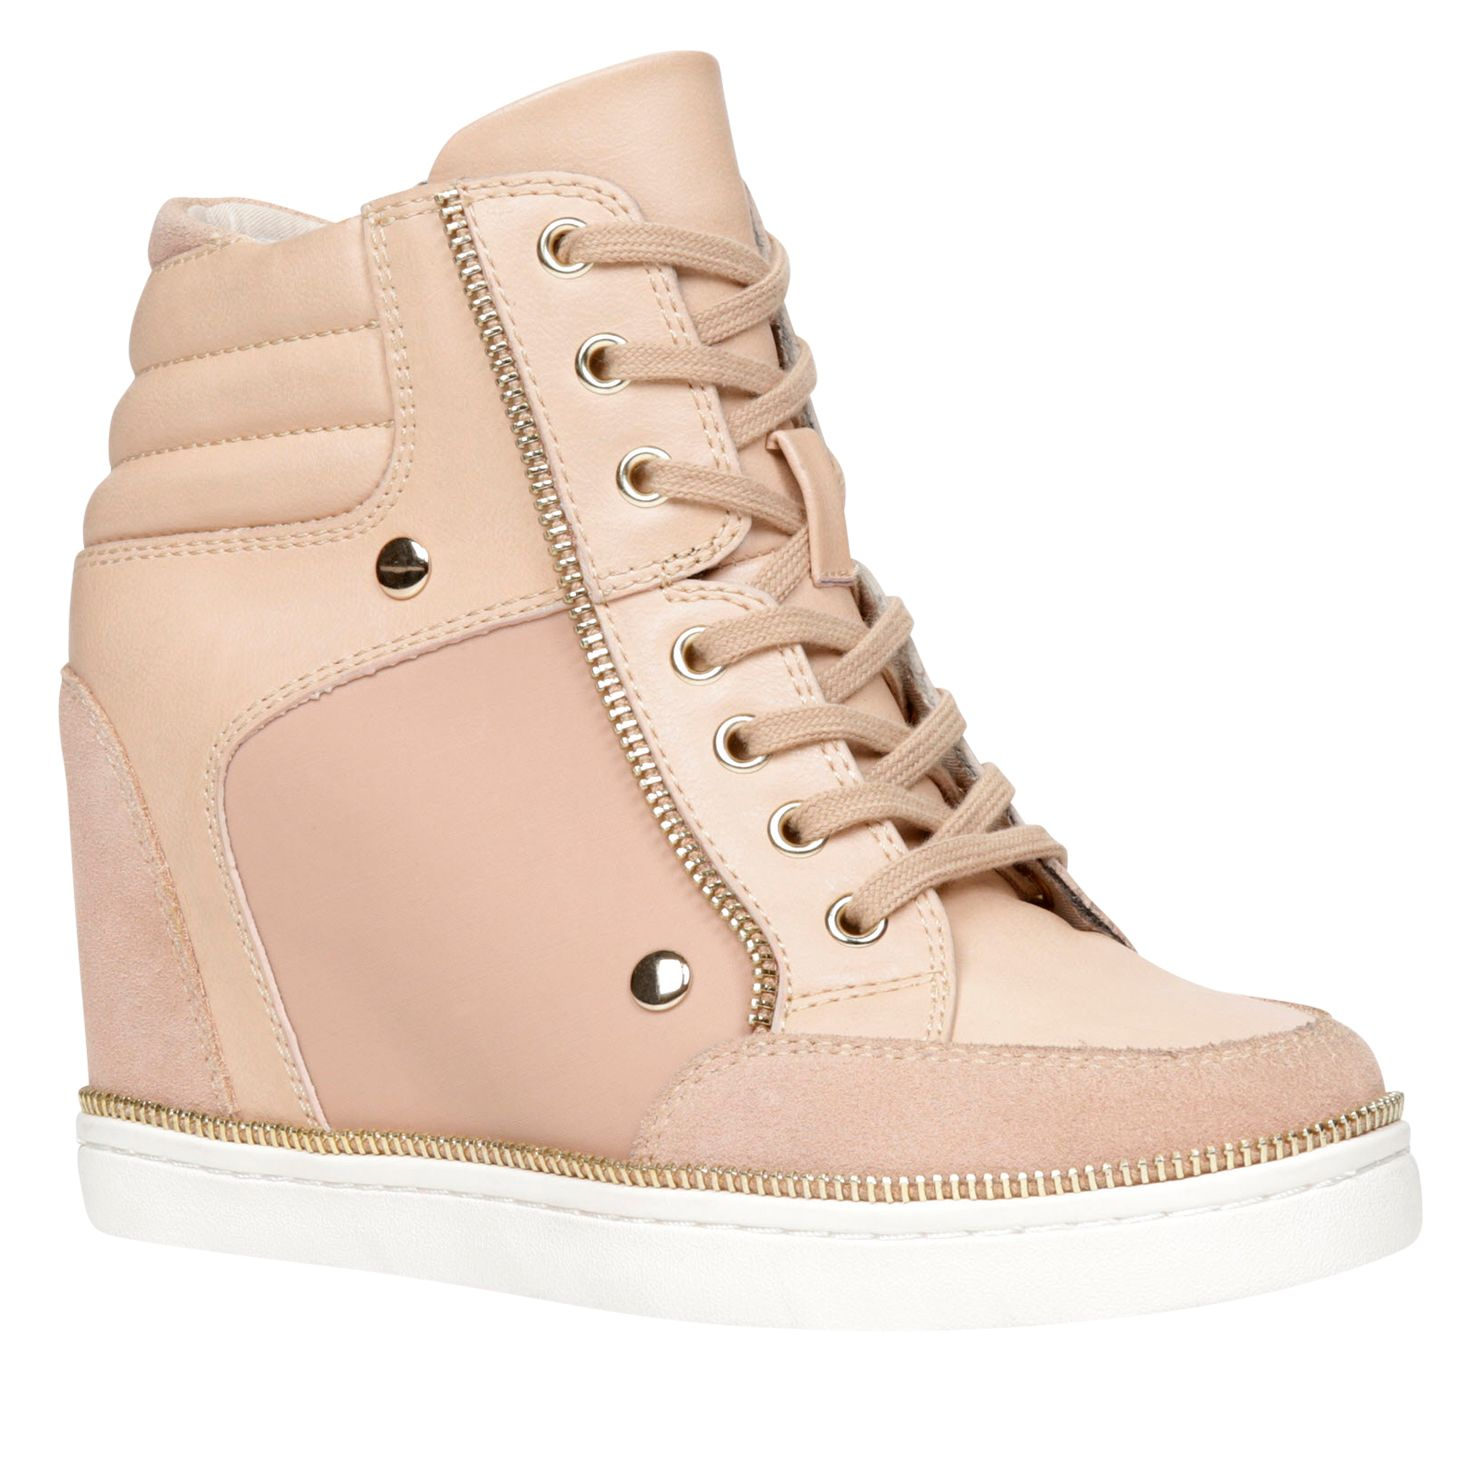 Aldo Ciambave Wedge Lace Up Trainers In Natural  Lyst-1258